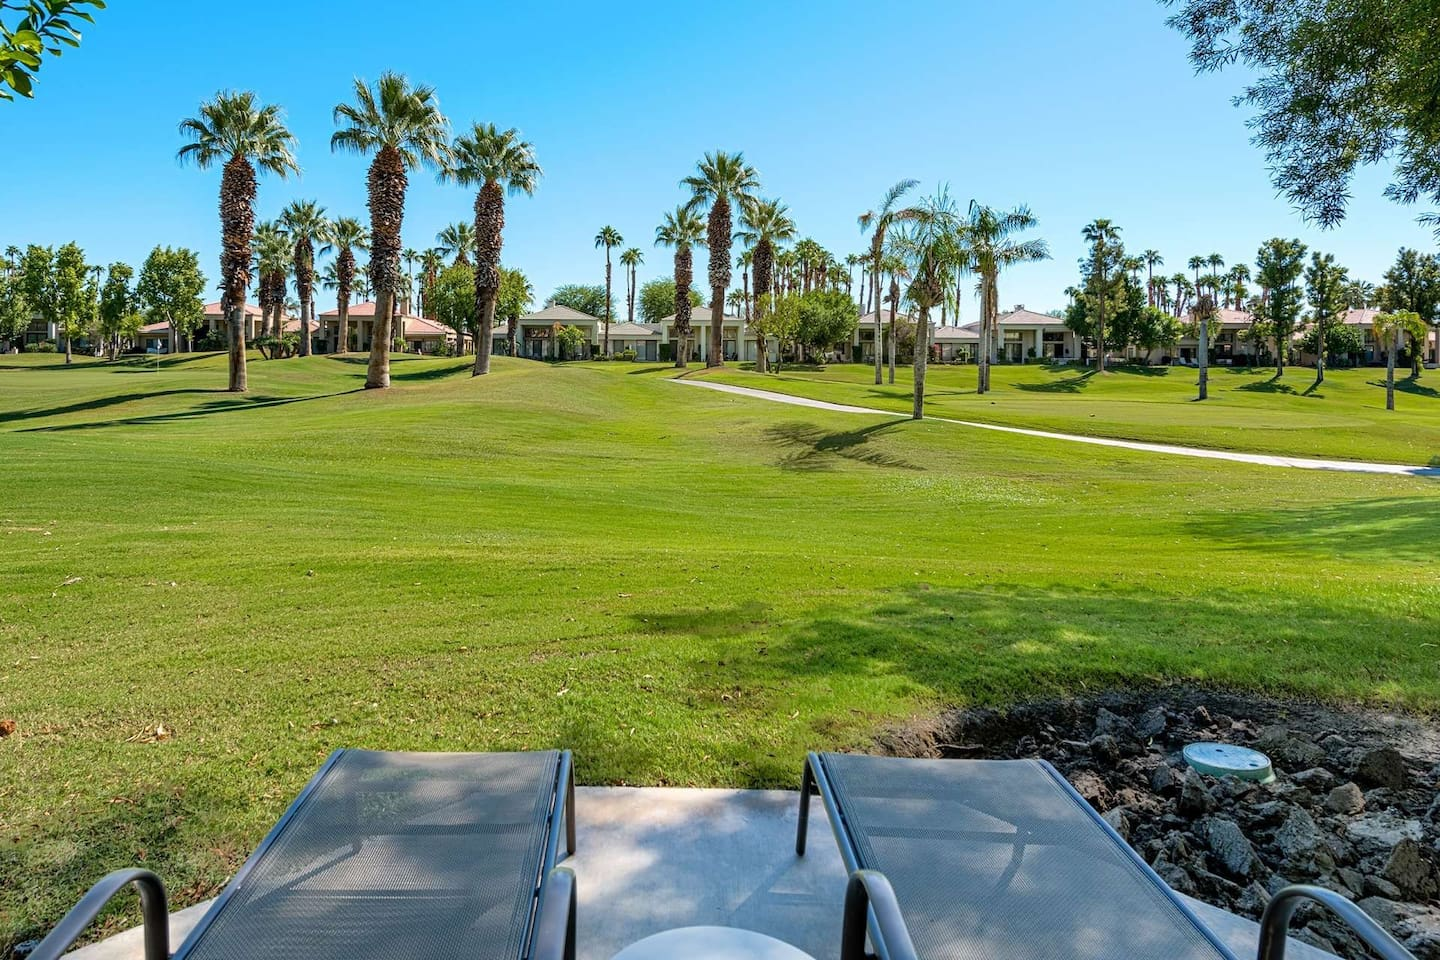 Relax outside while enjoying the views and golf